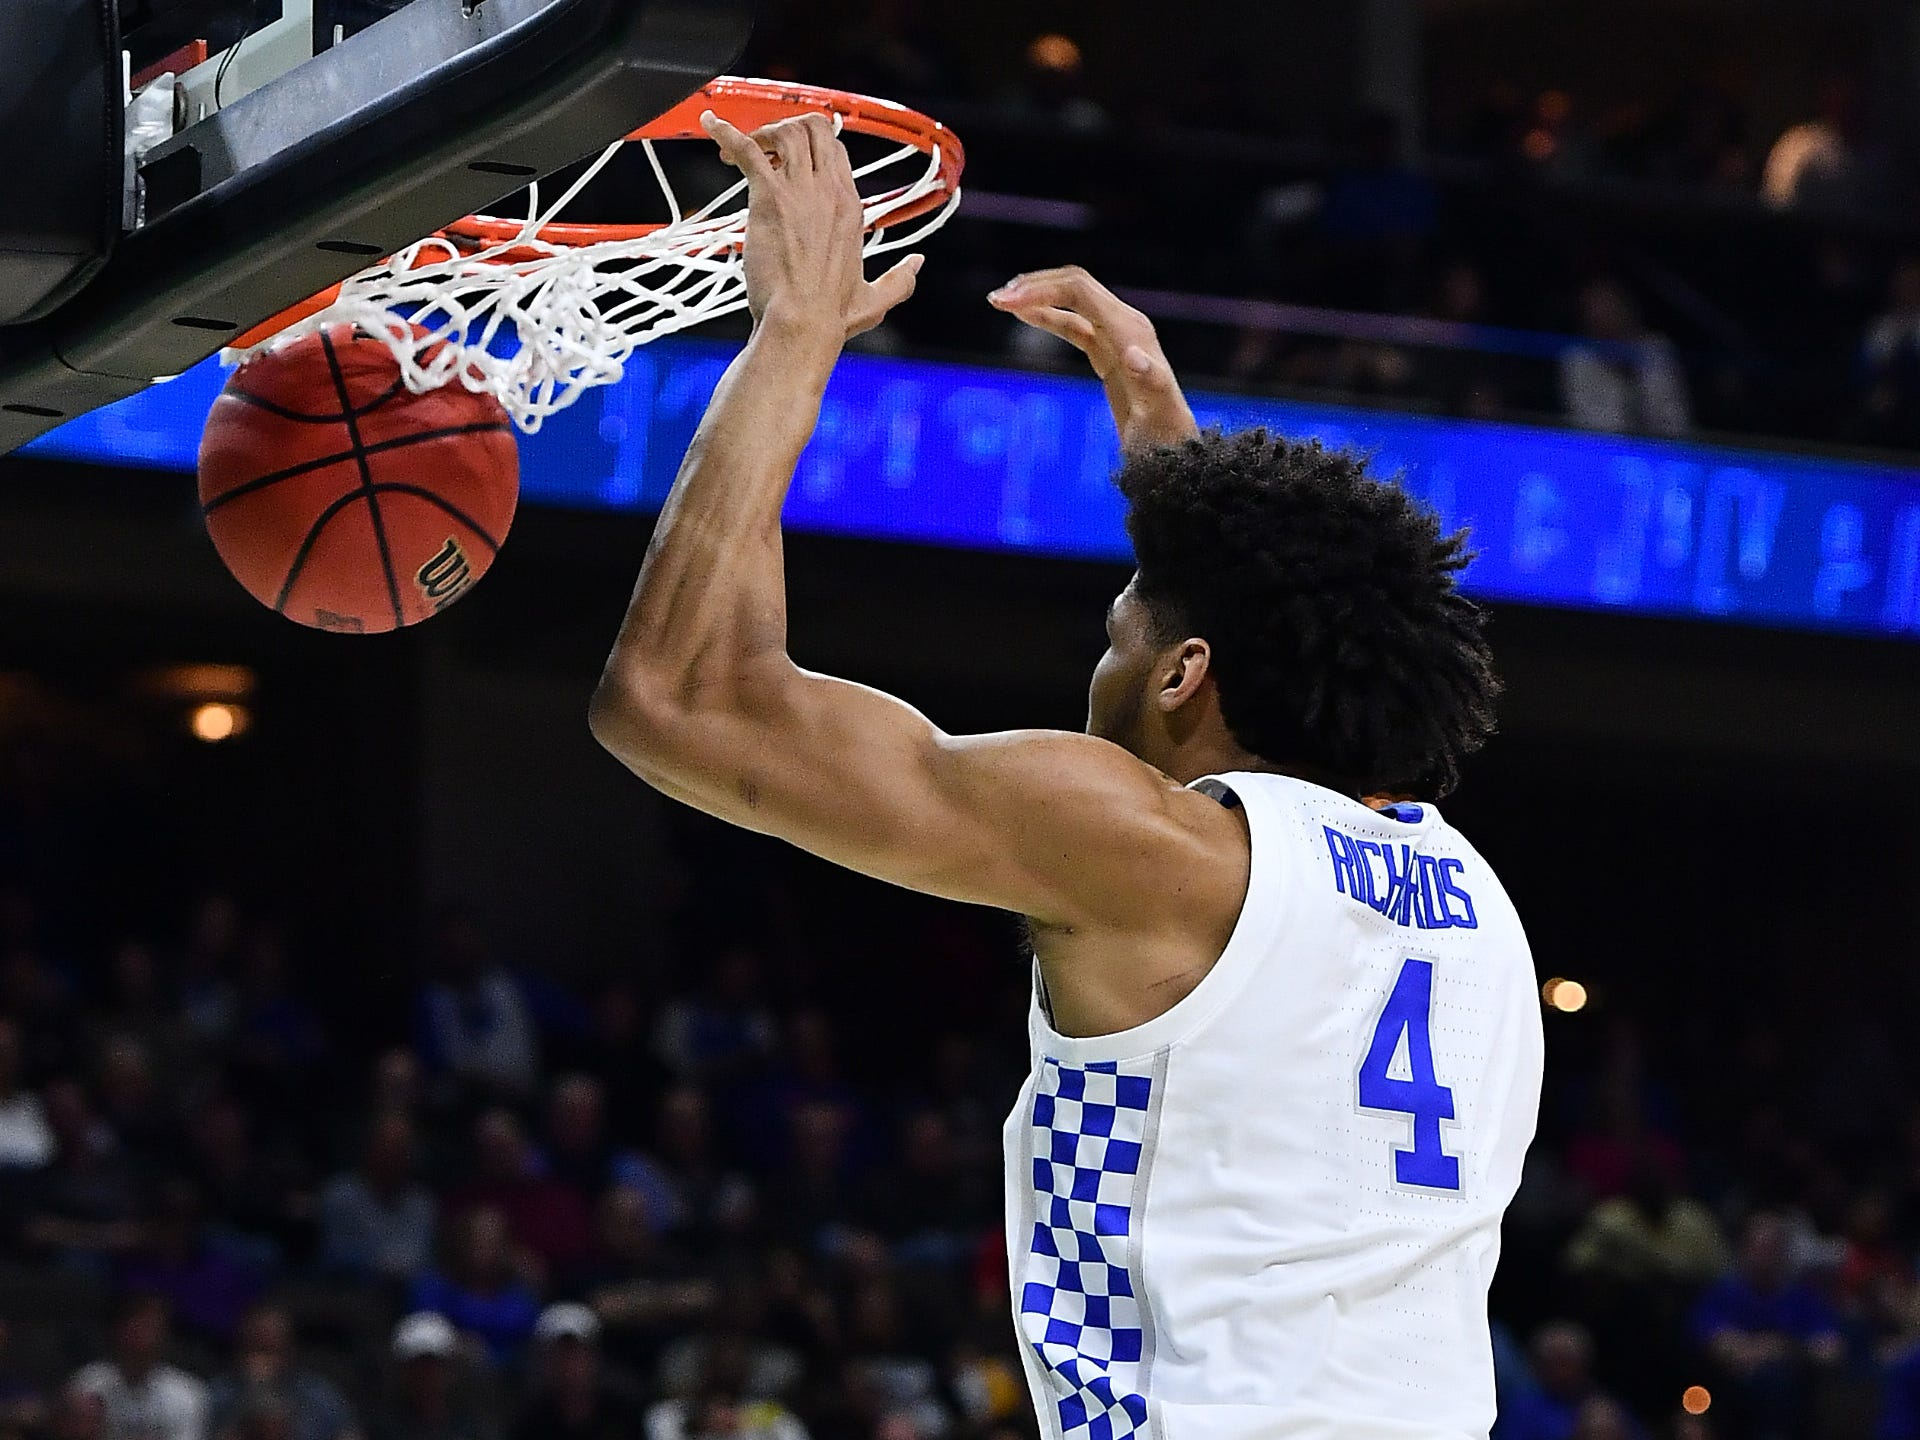 First round: Kentucky forward Nick Richards dunks the ball against Abilene Christian. The Wildcats rolled to a 35-point victory.